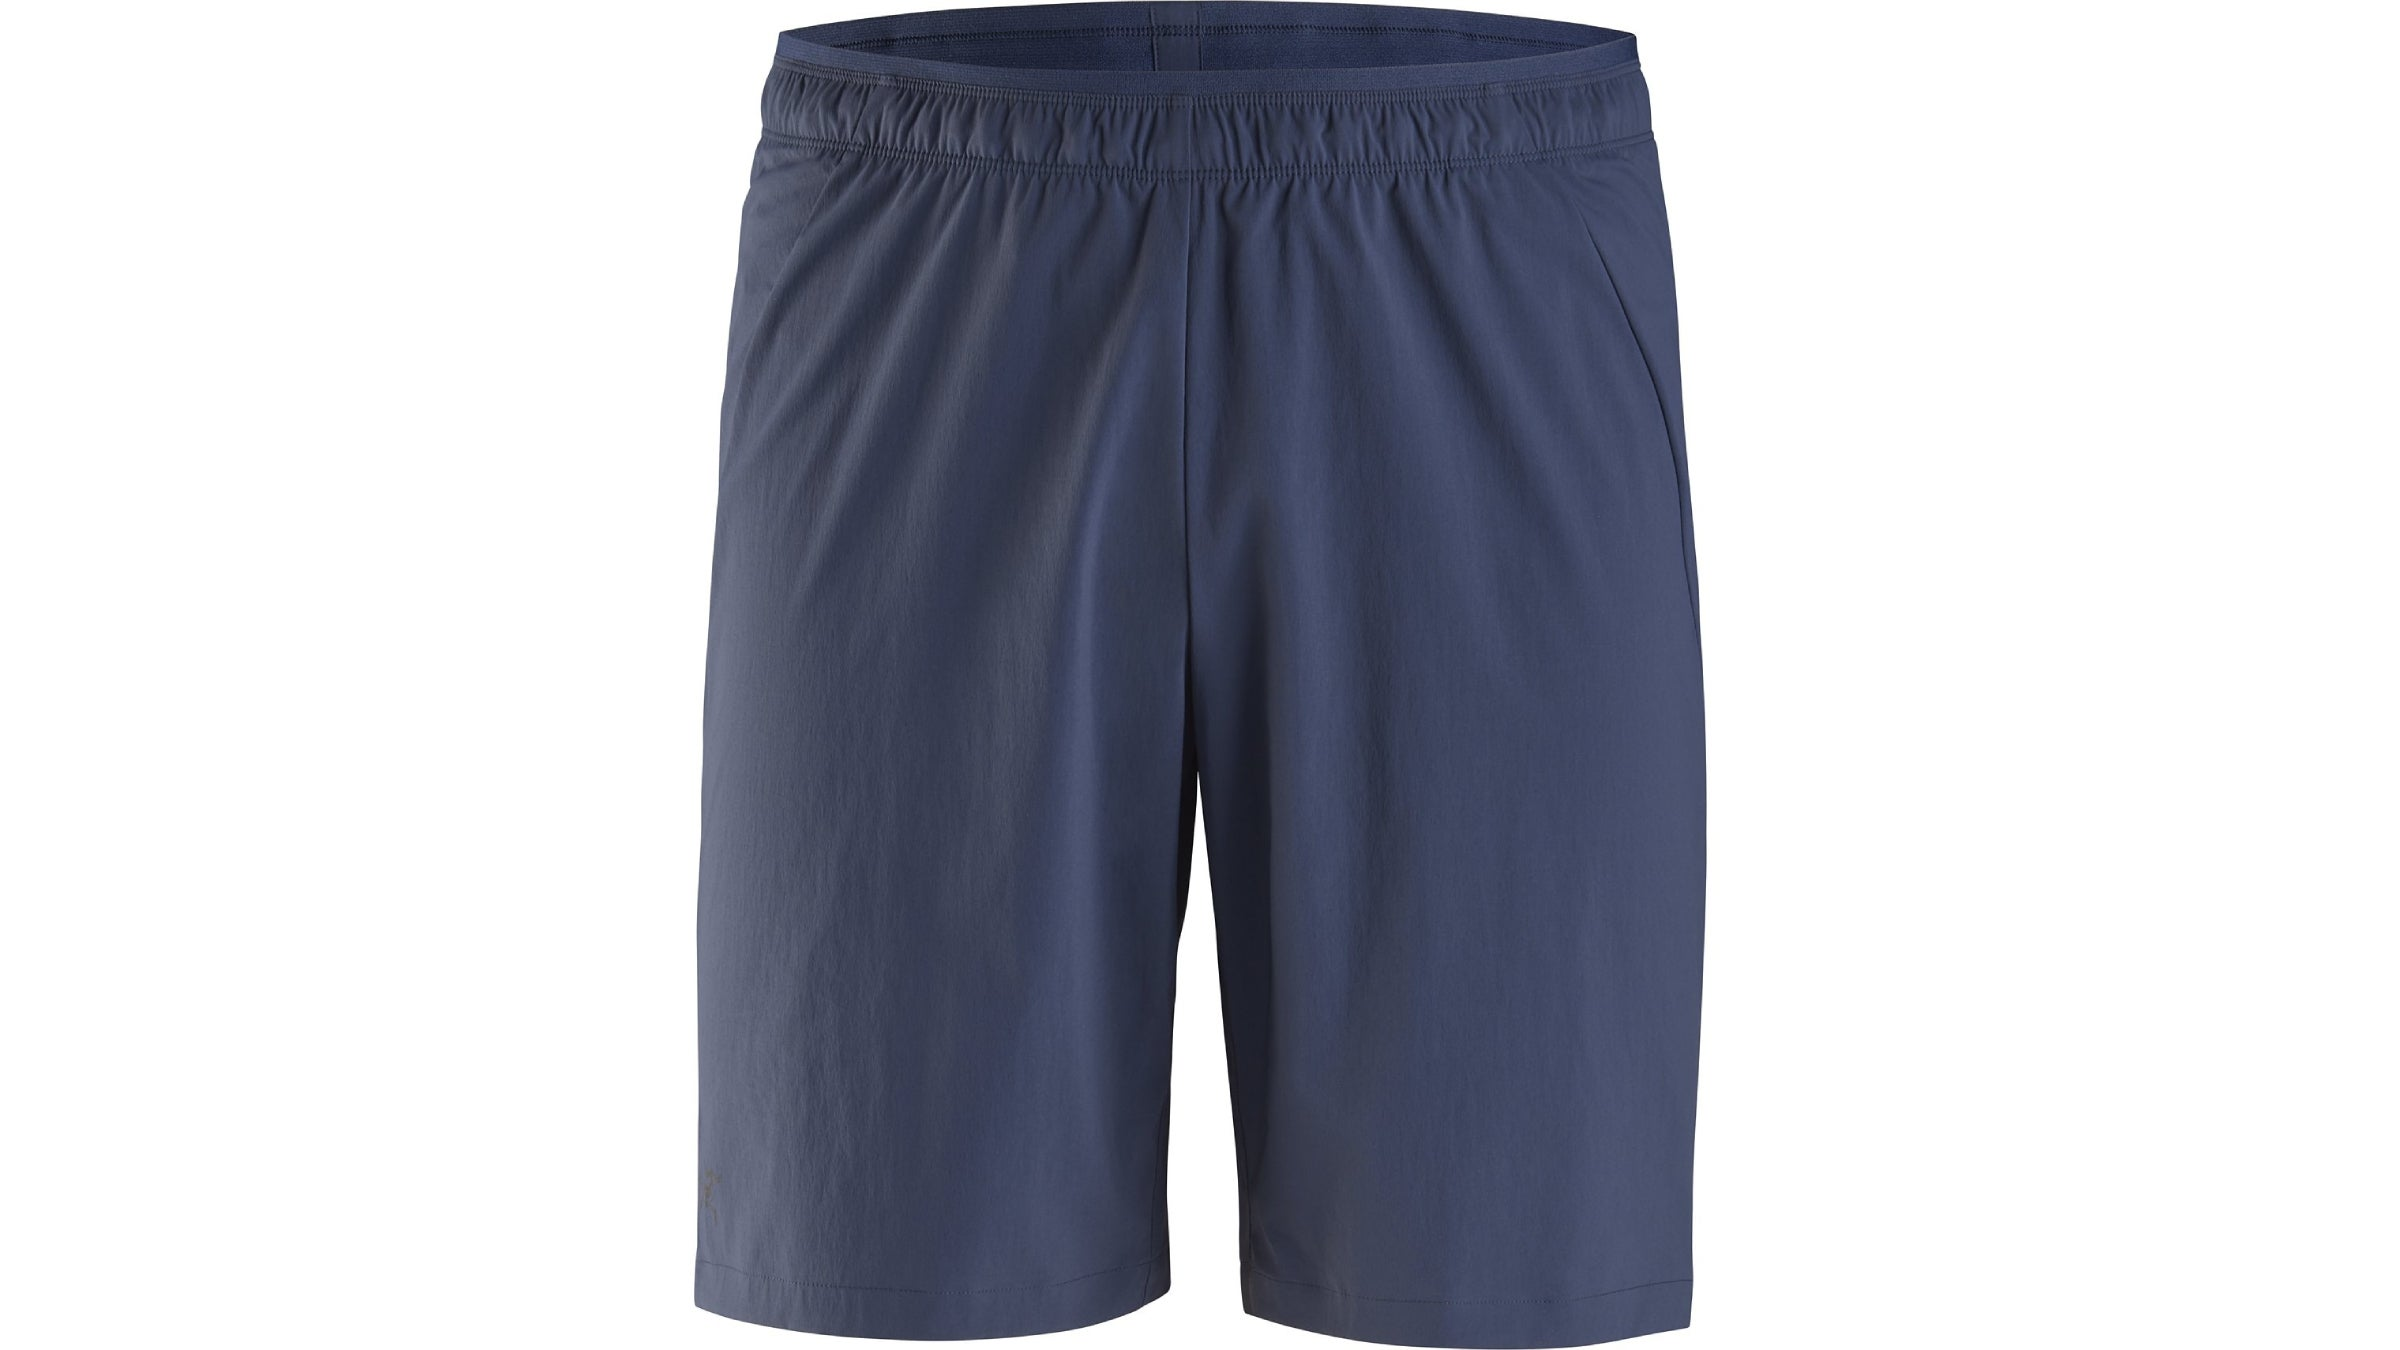 Men's dark blue Arcteryx Incendo shorts